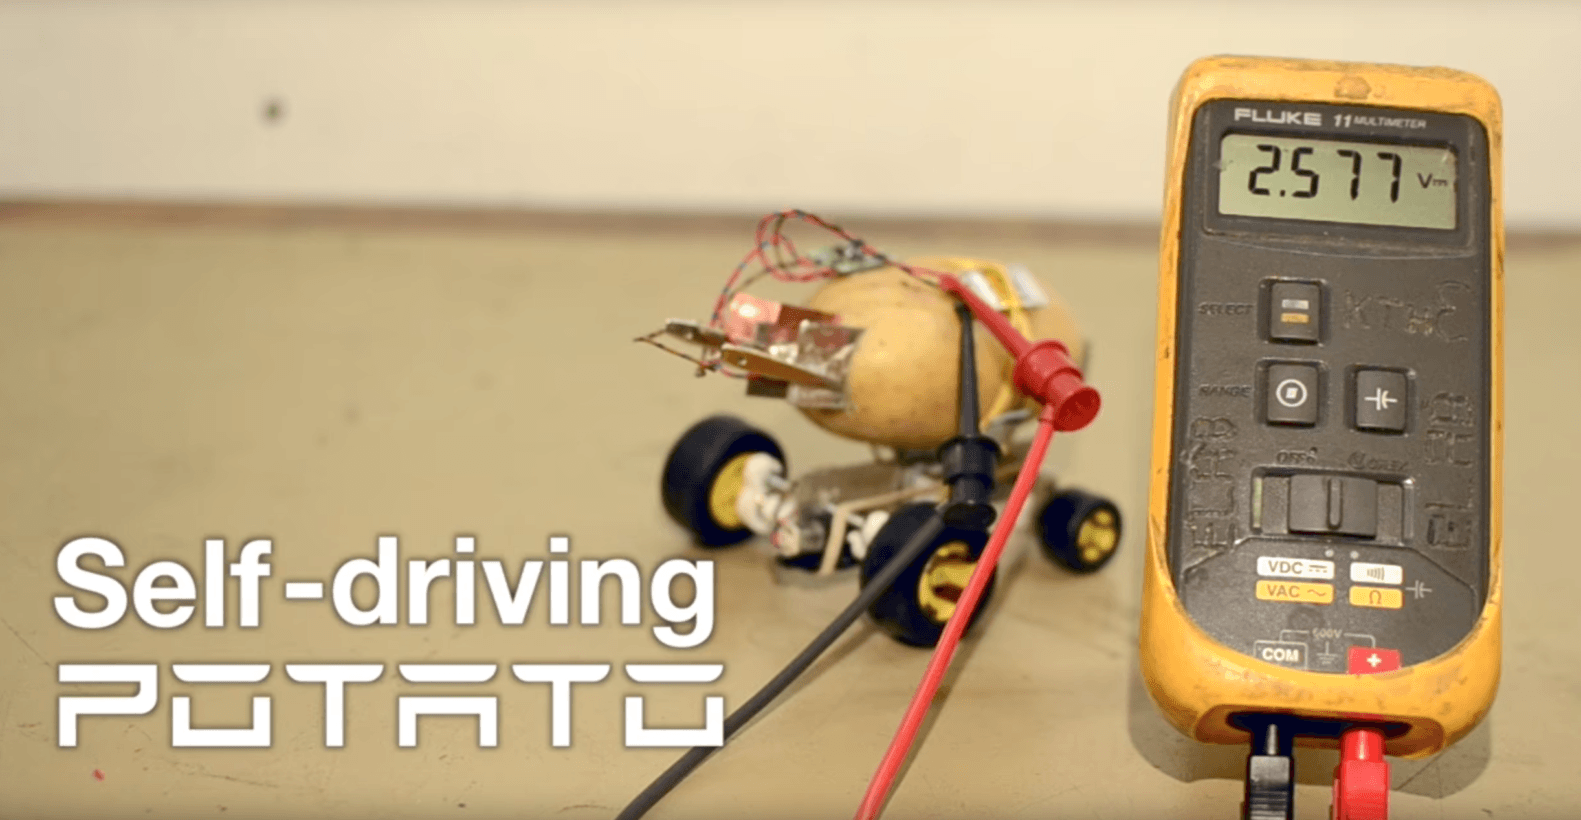 This electric self-driving potato is the Tesla of shitty robots